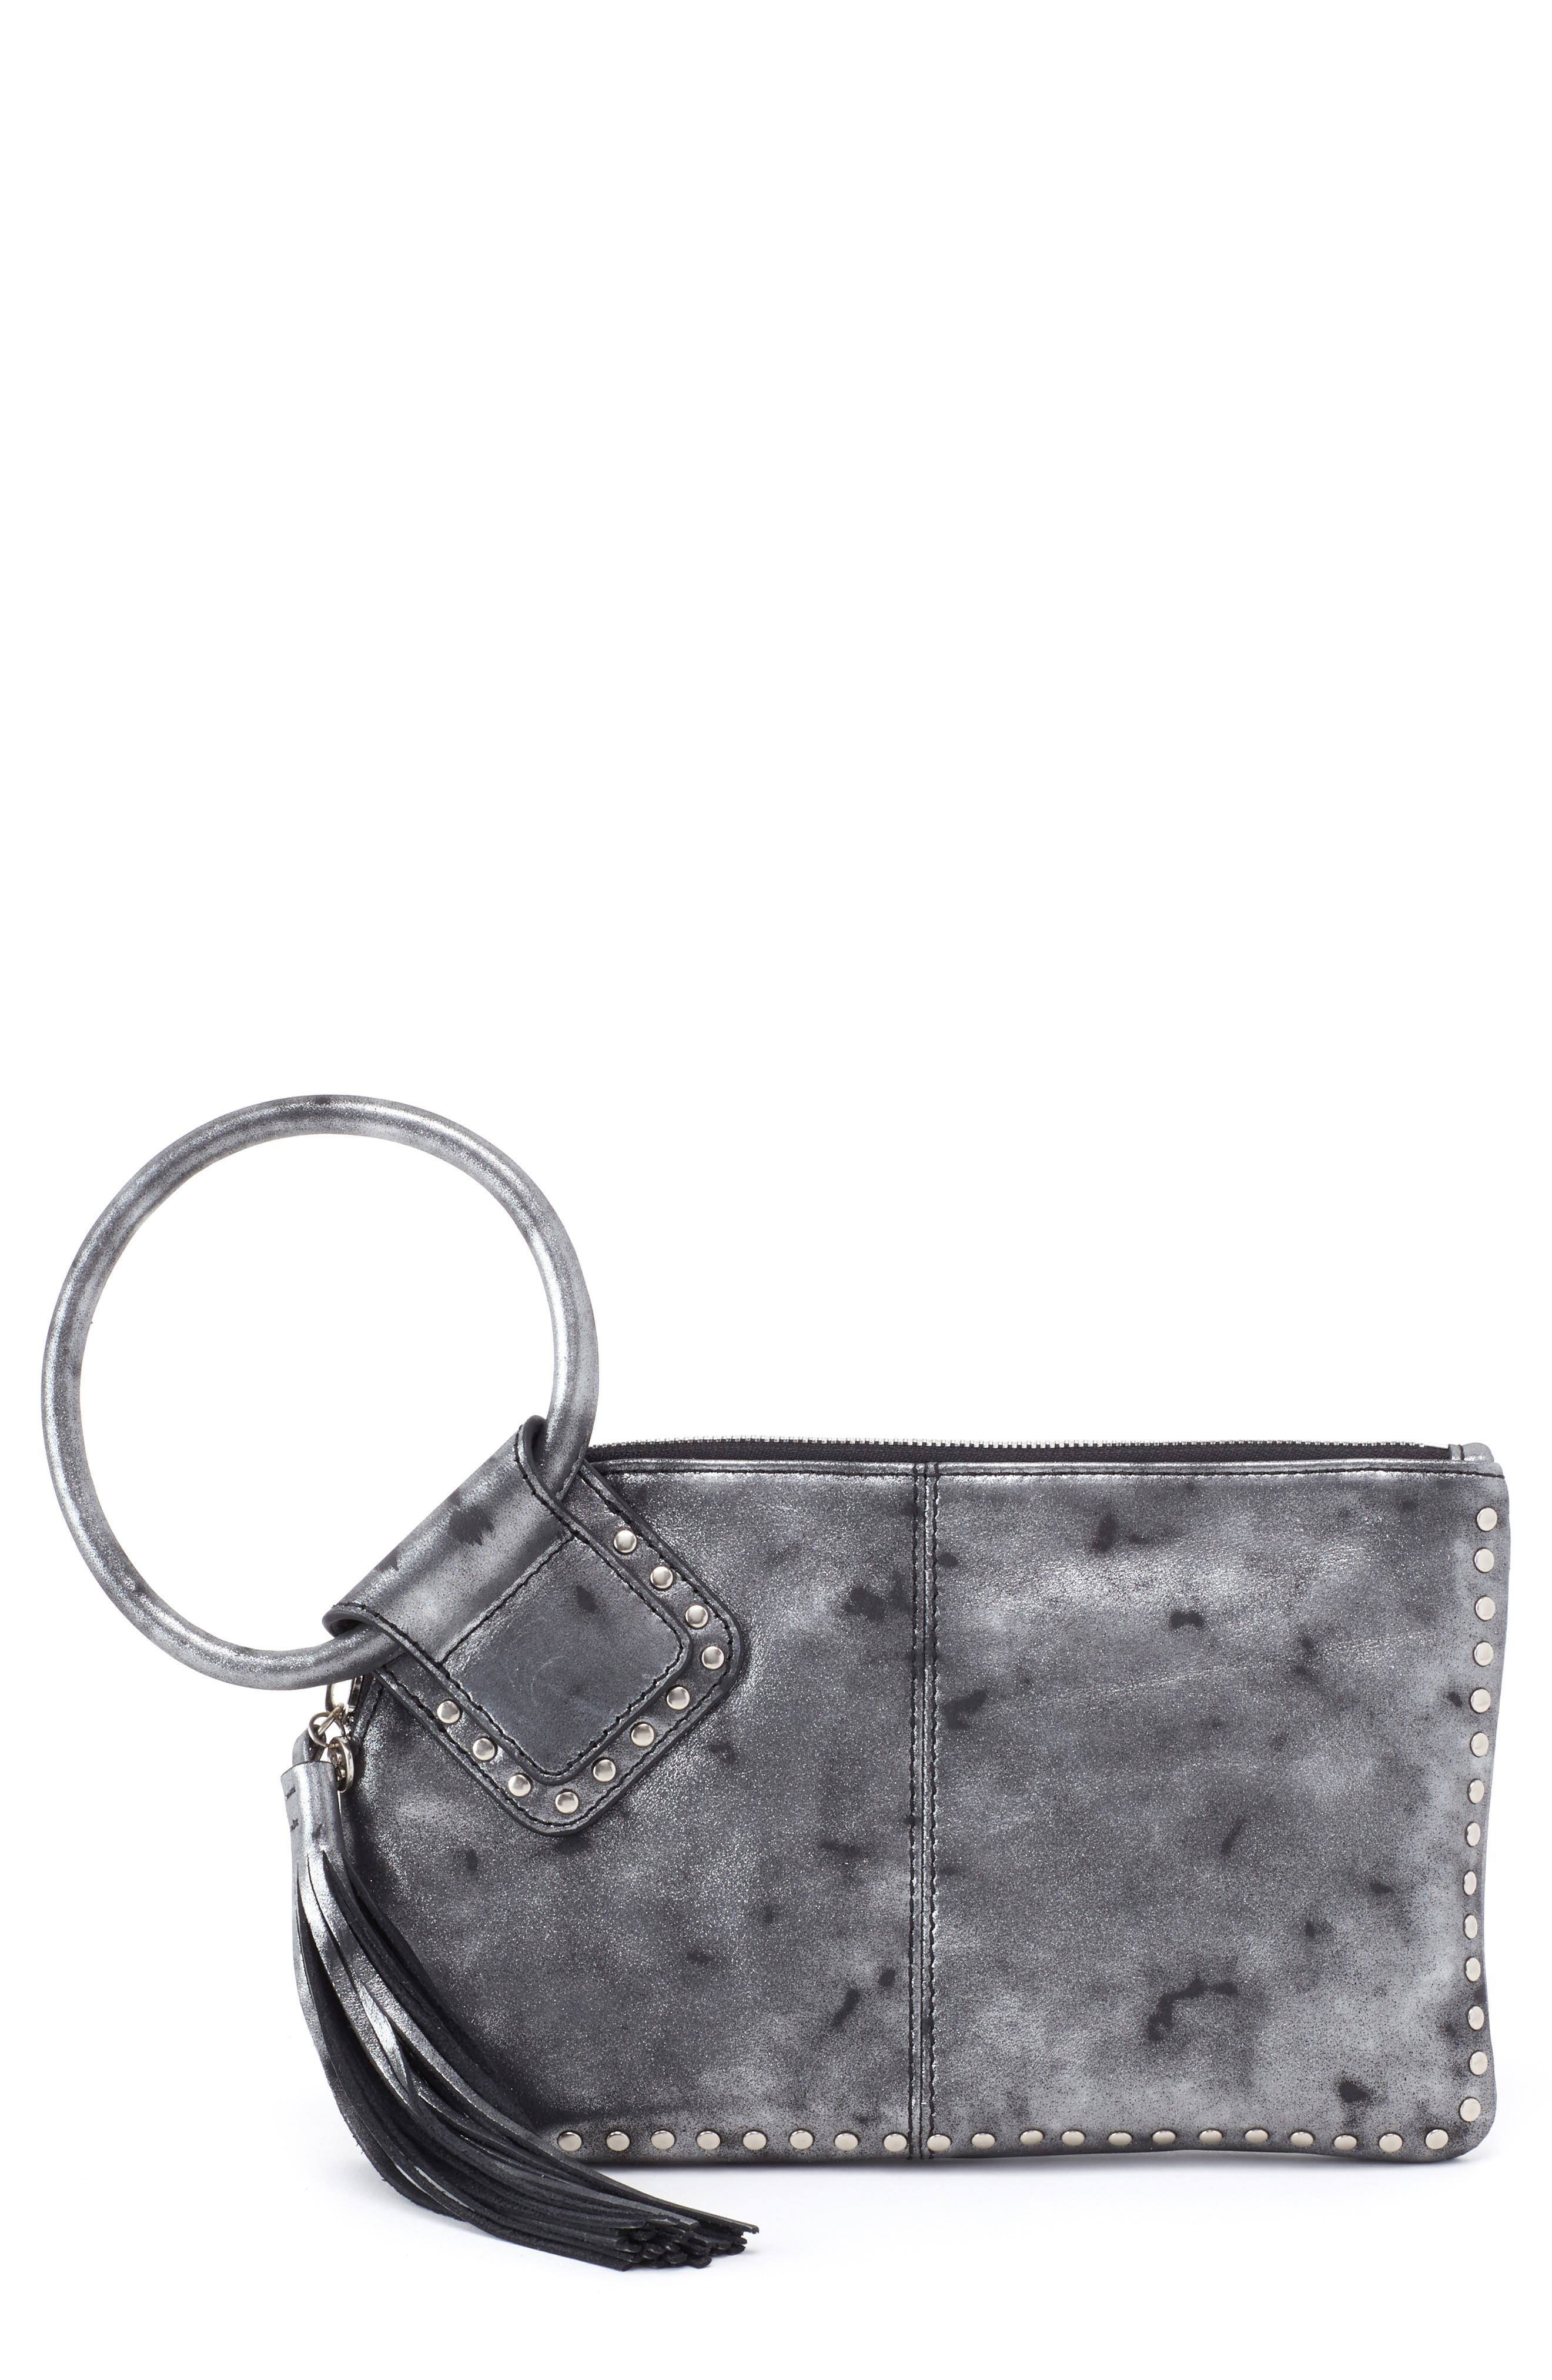 Sable Clutch,                             Main thumbnail 1, color,                             020